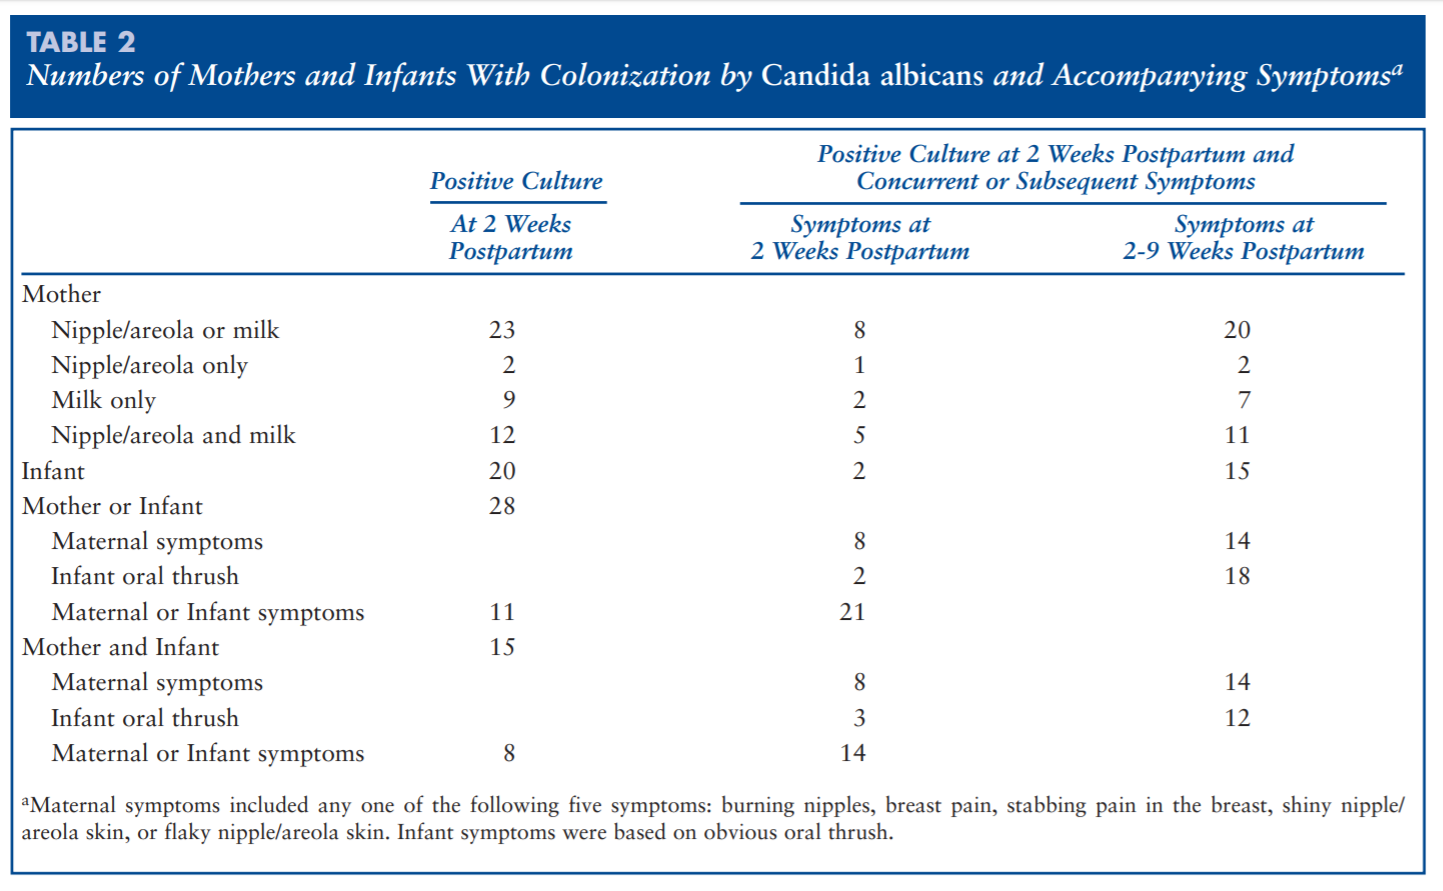 The above chart shows the prevelance of Candida colonization and symptoms at two time intervals. It can be seen, that many women had Candida colonized from some location and experienced symptoms.